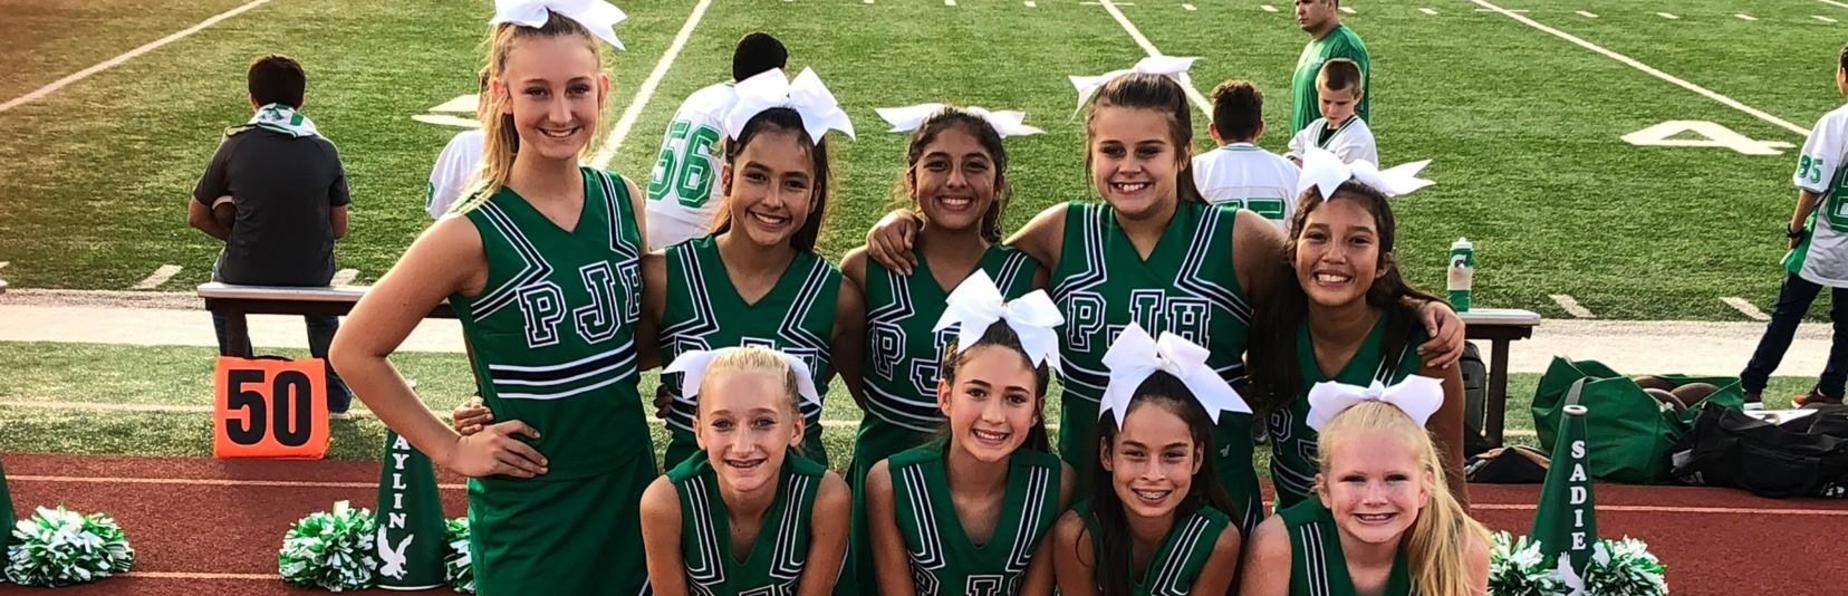 JH cheerleaders